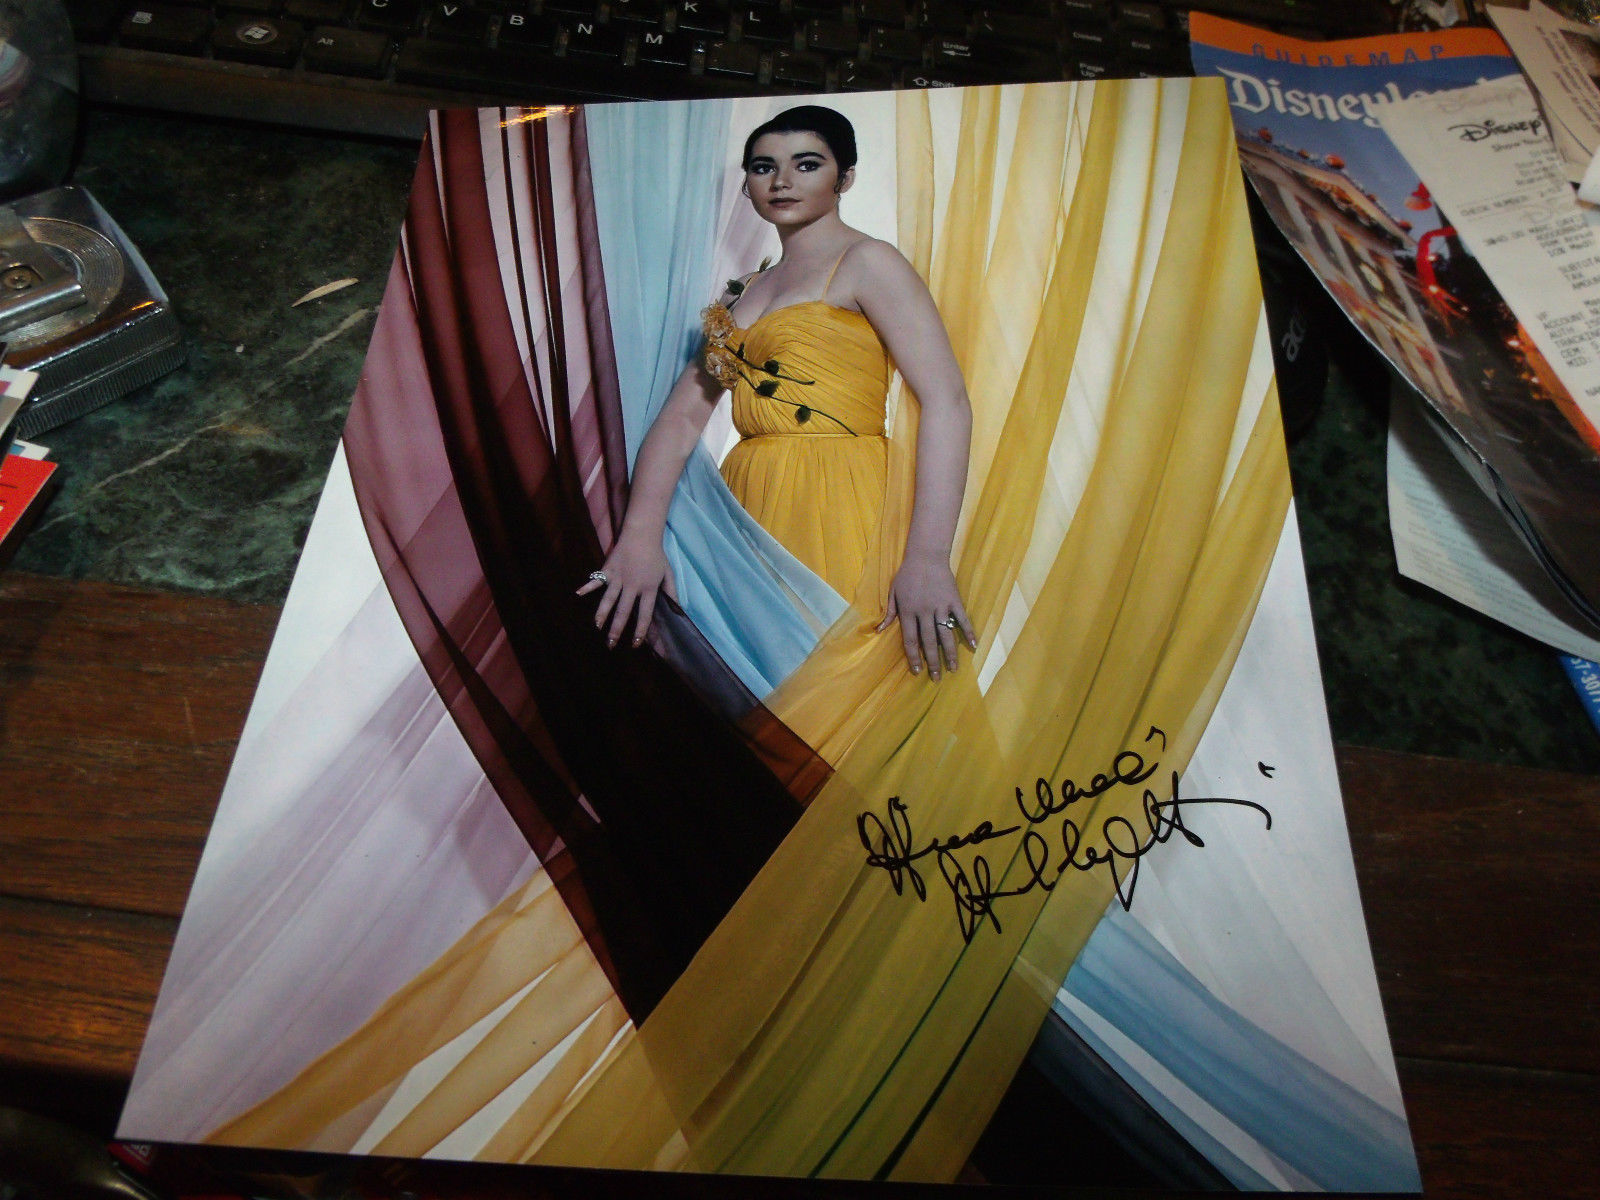 ANNA MARIE ALBERGHETTI HAND SIGNED 8X10 PHOTO